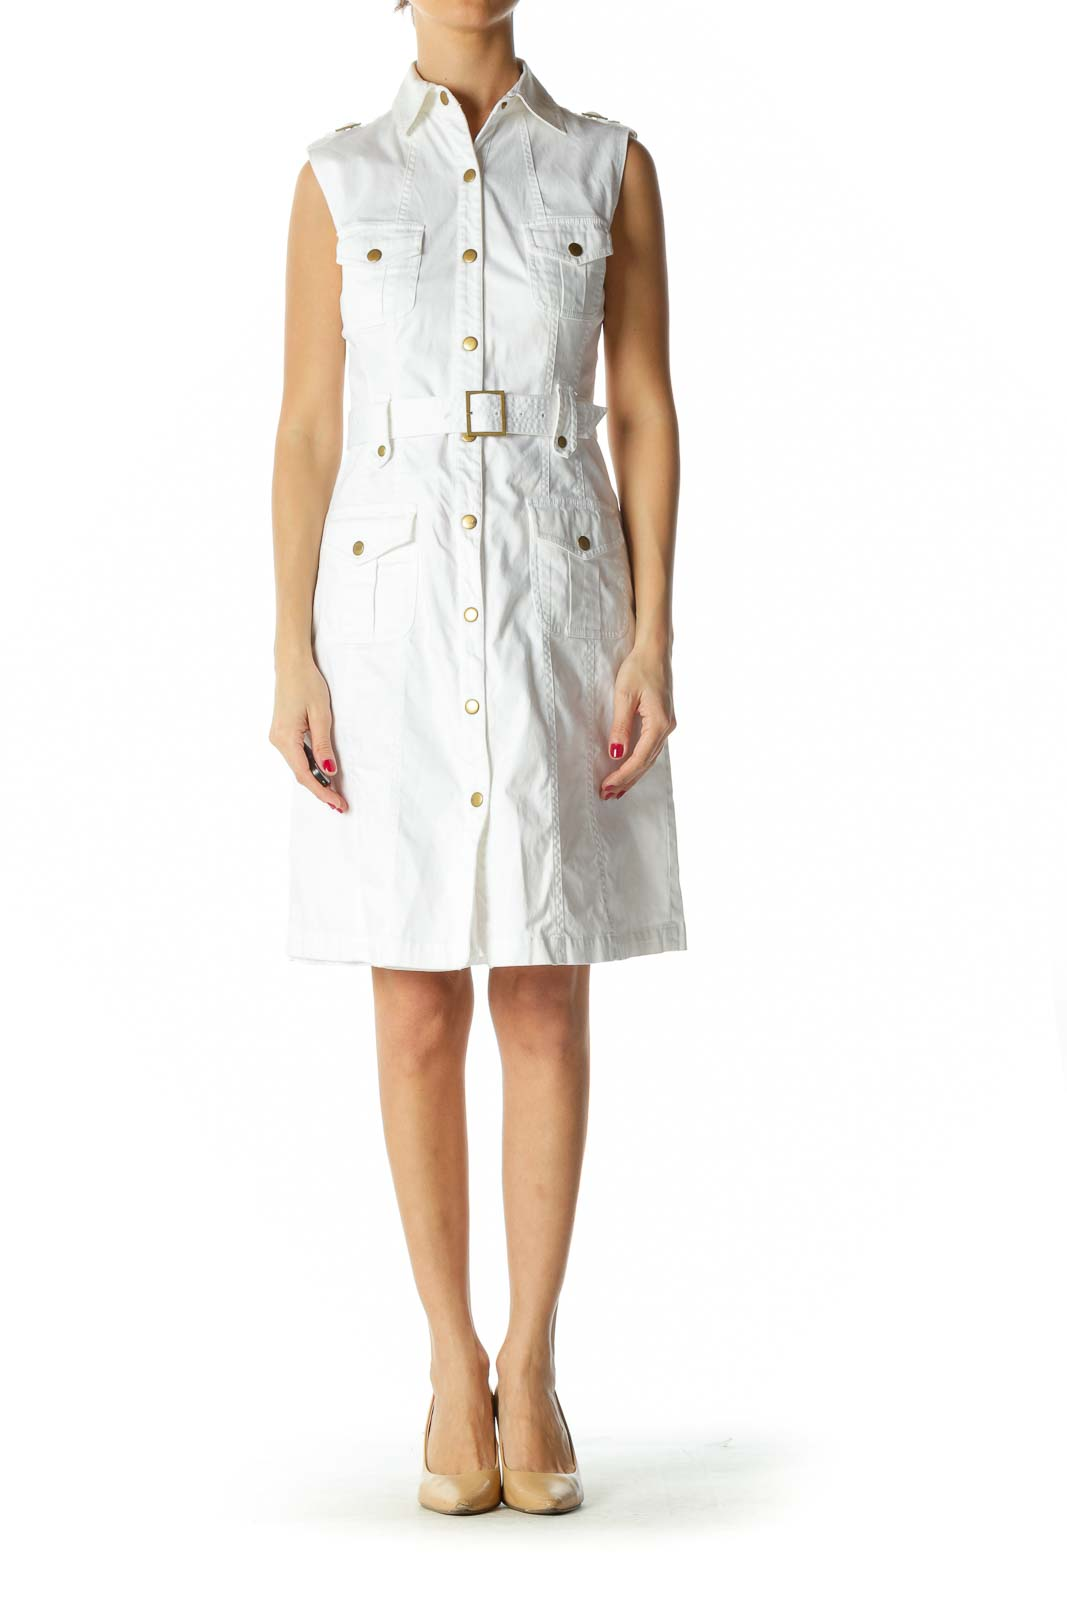 White Sleeveless Utility Dress